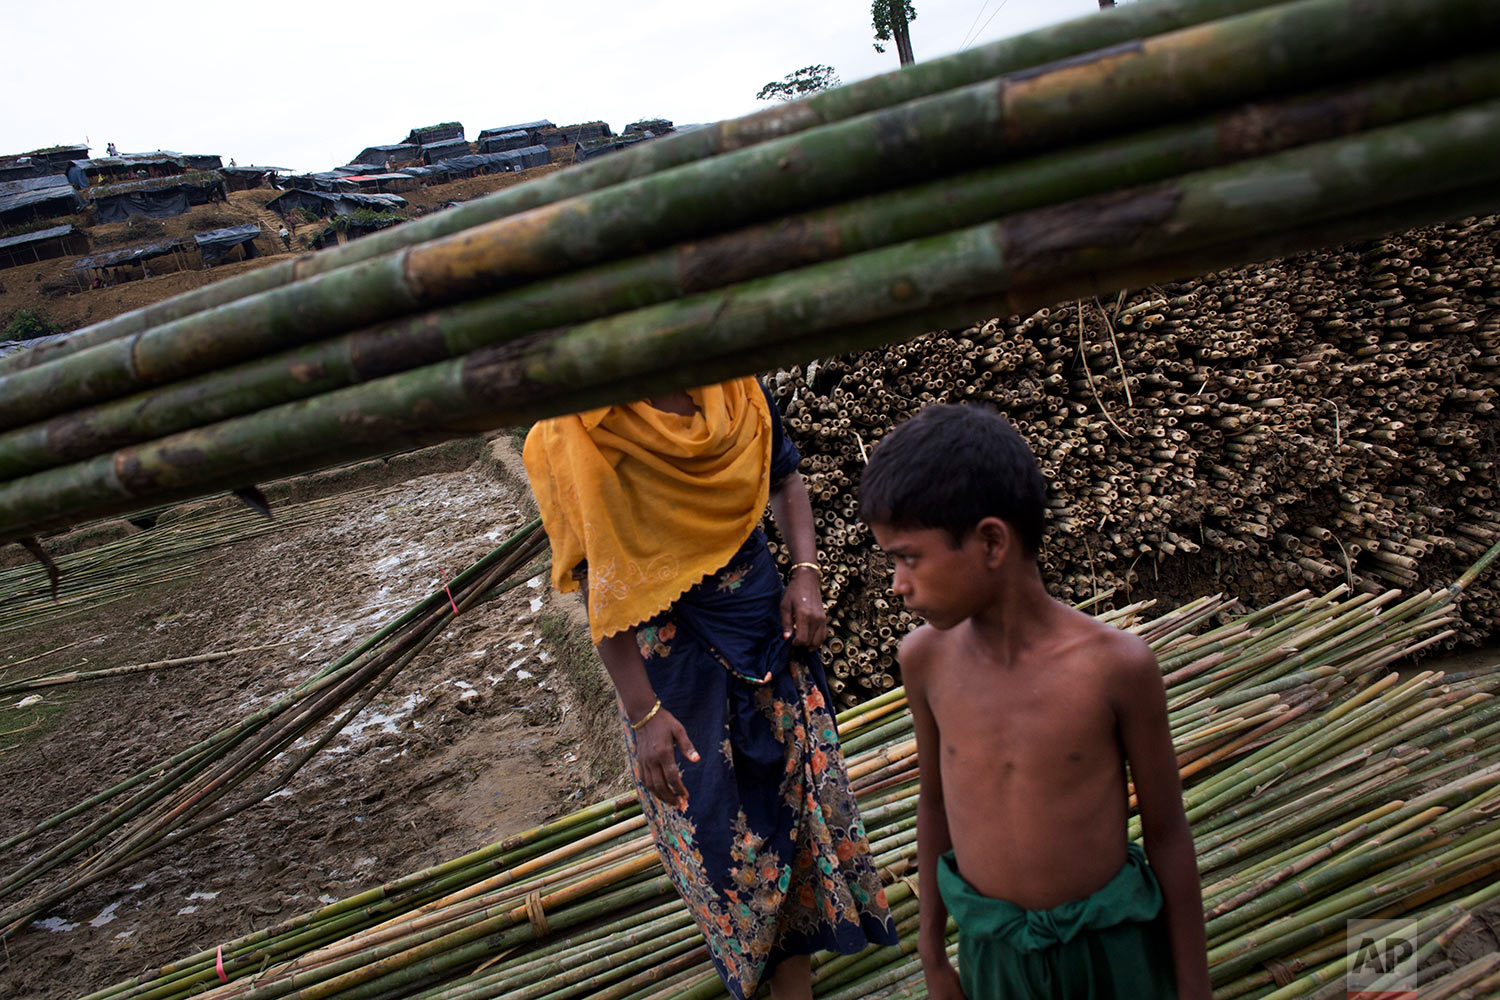 A Rohingya boy stands near bamboo poles used for building tents at a new refugee camp in Ukhia, Bangladesh, Saturday, Sept. 9, 2017. (AP Photo/Bernat Armangue)